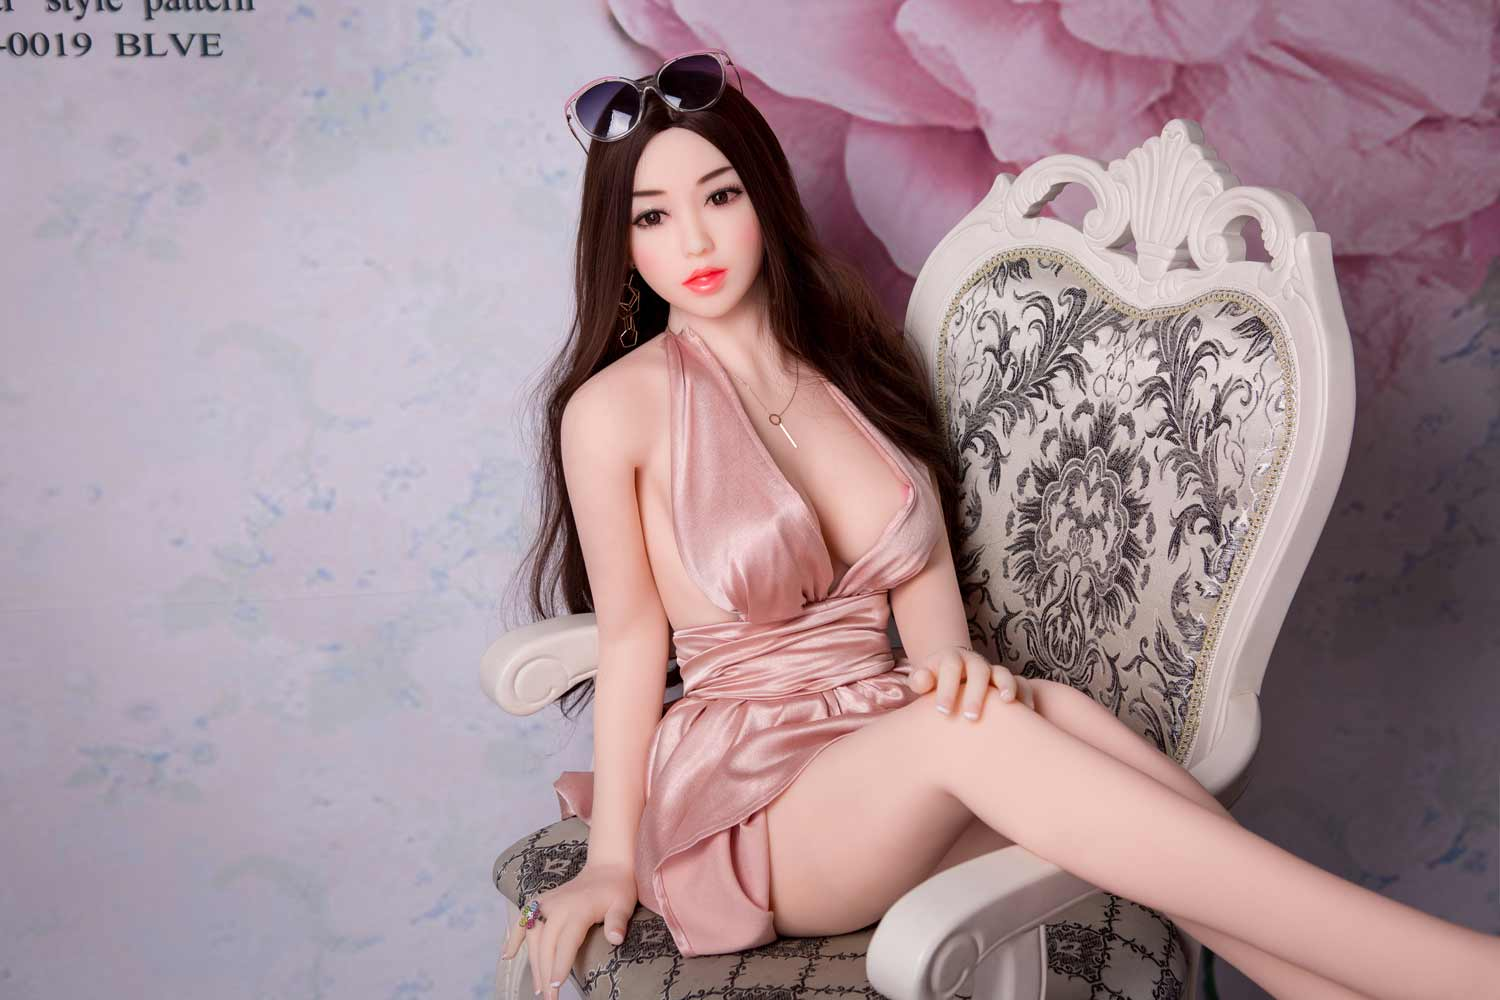 Sex doll with legs on the arm of the chair